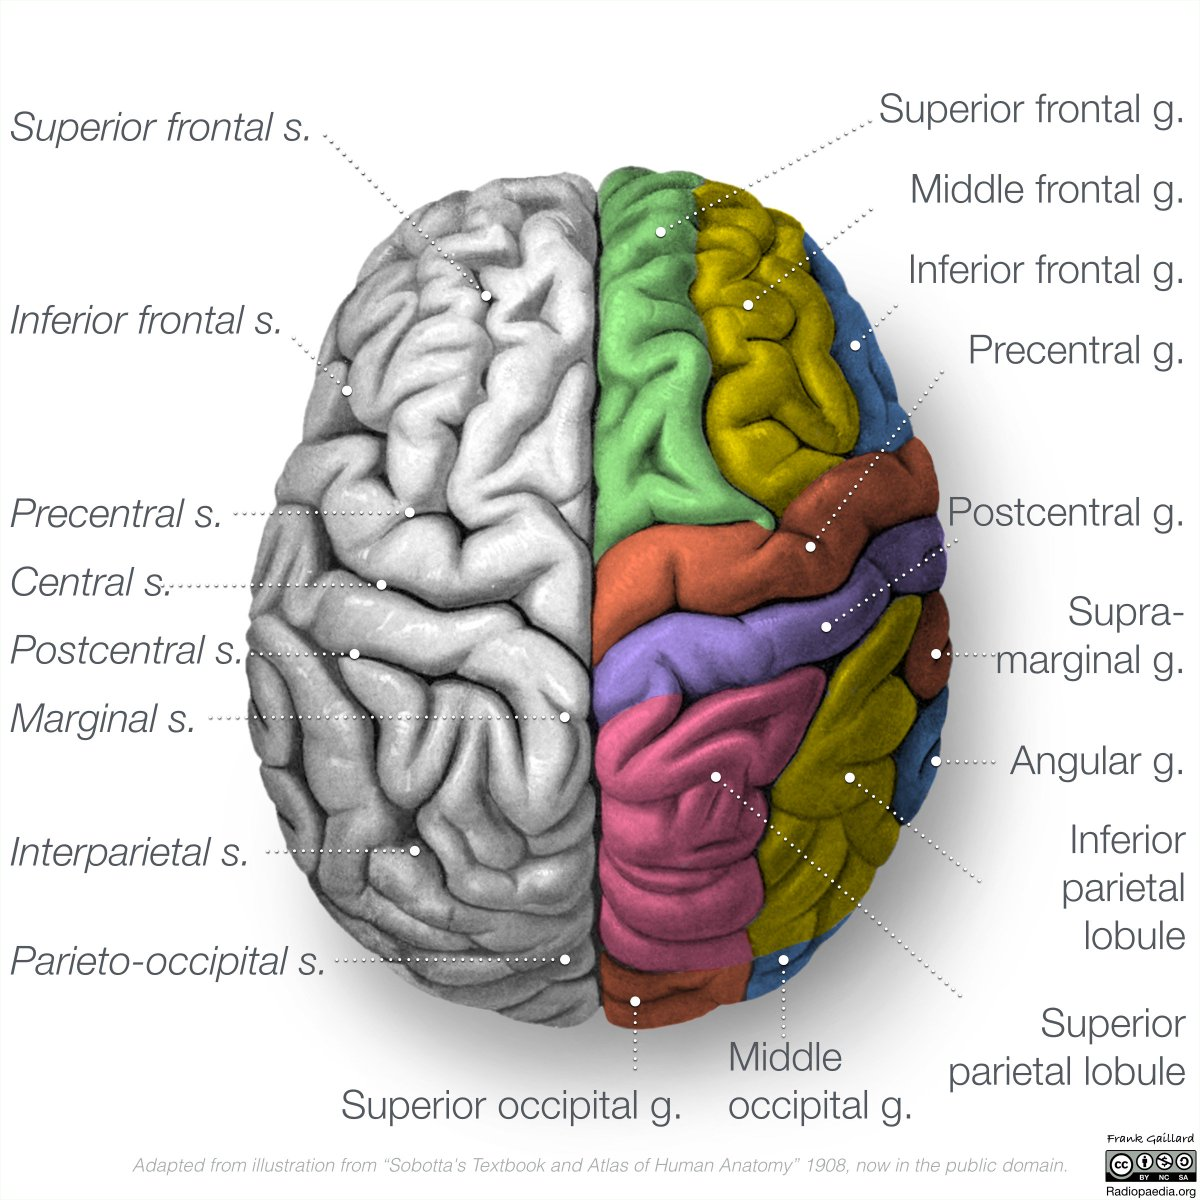 Frank Gaillard On Twitter More Brain Anatomy Goodness All